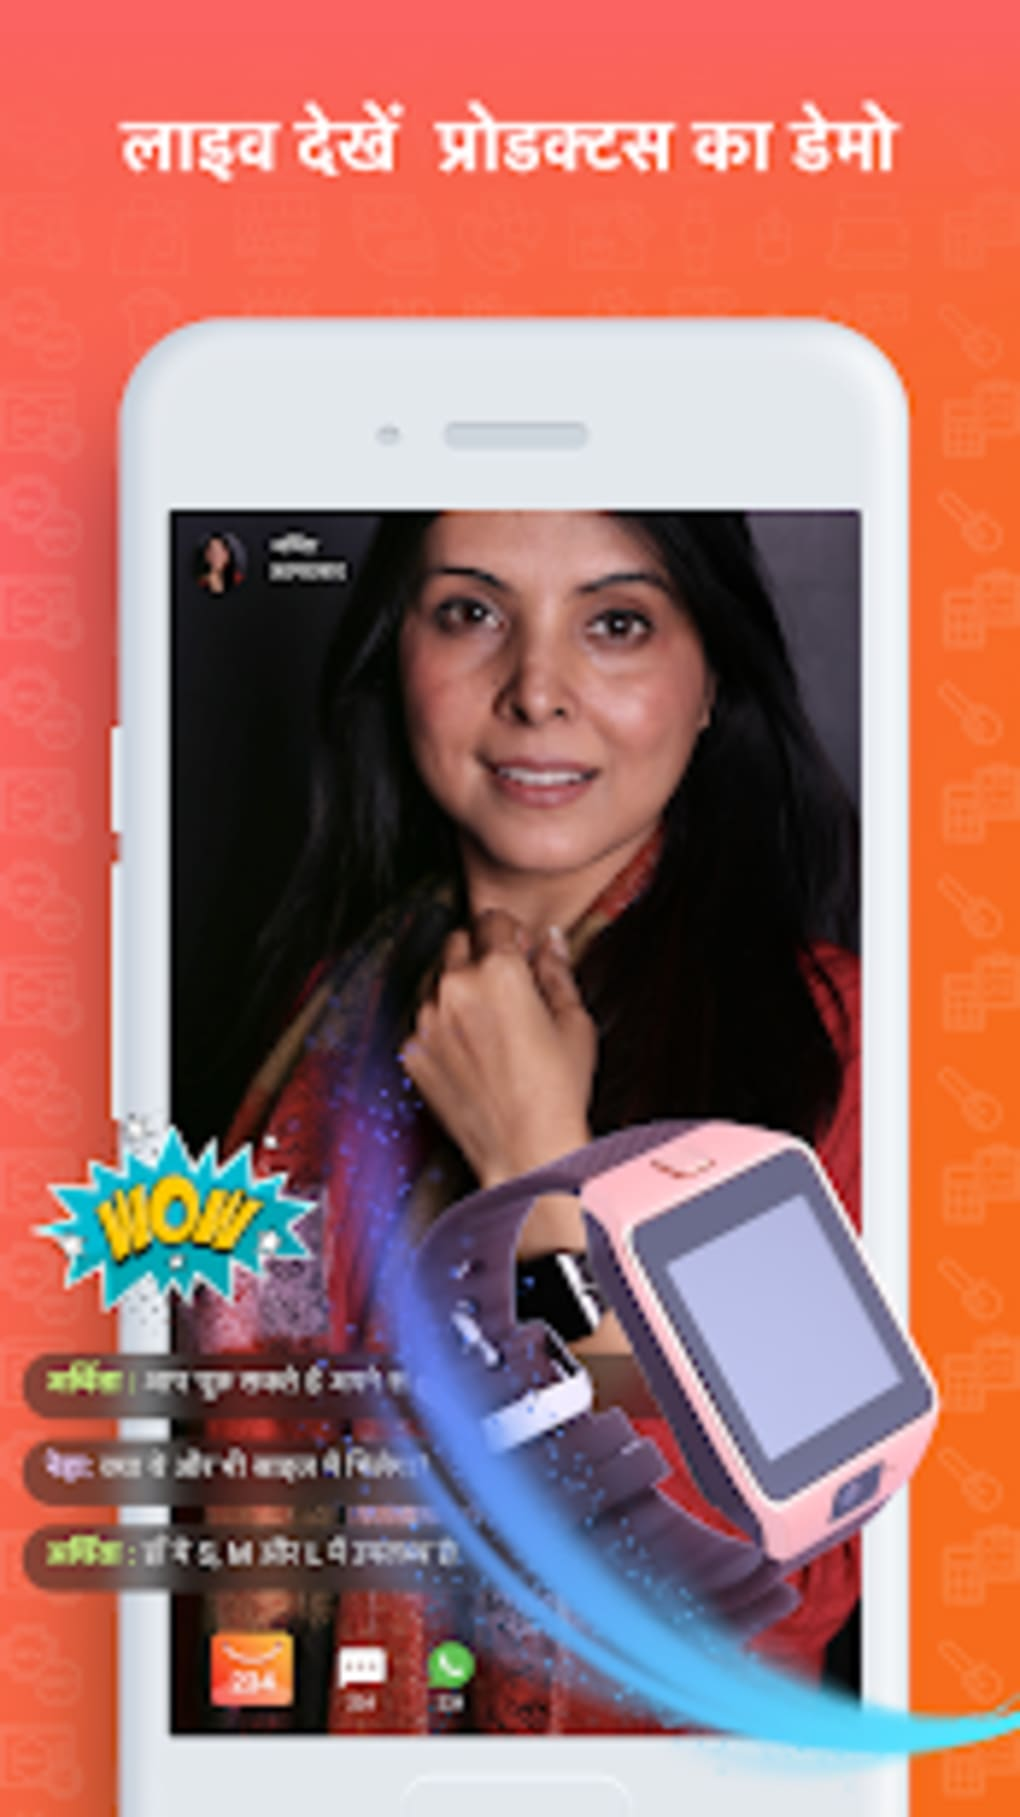 Bulbul - Online Video Shopping App for Android - Download